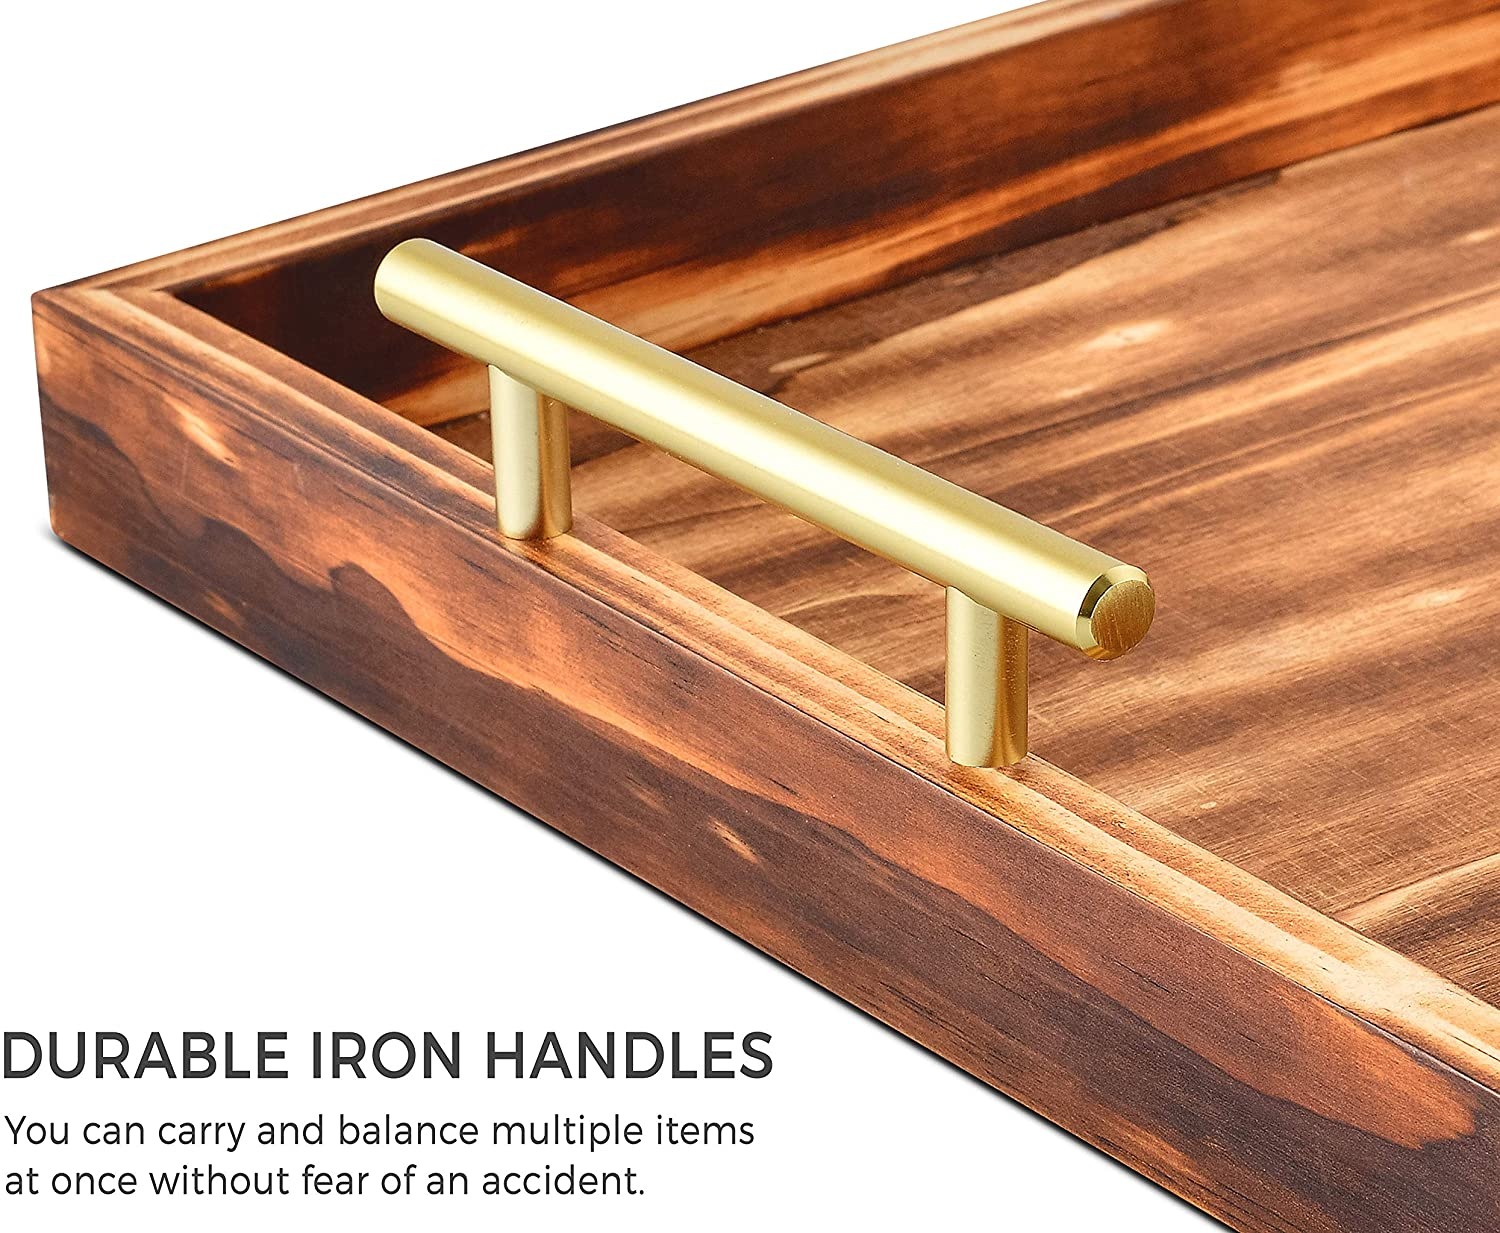 jana decorative tray with golden handles 18 x 13 large wooden serving tray for ottoman coffee table wood tray coffee table tray perfect